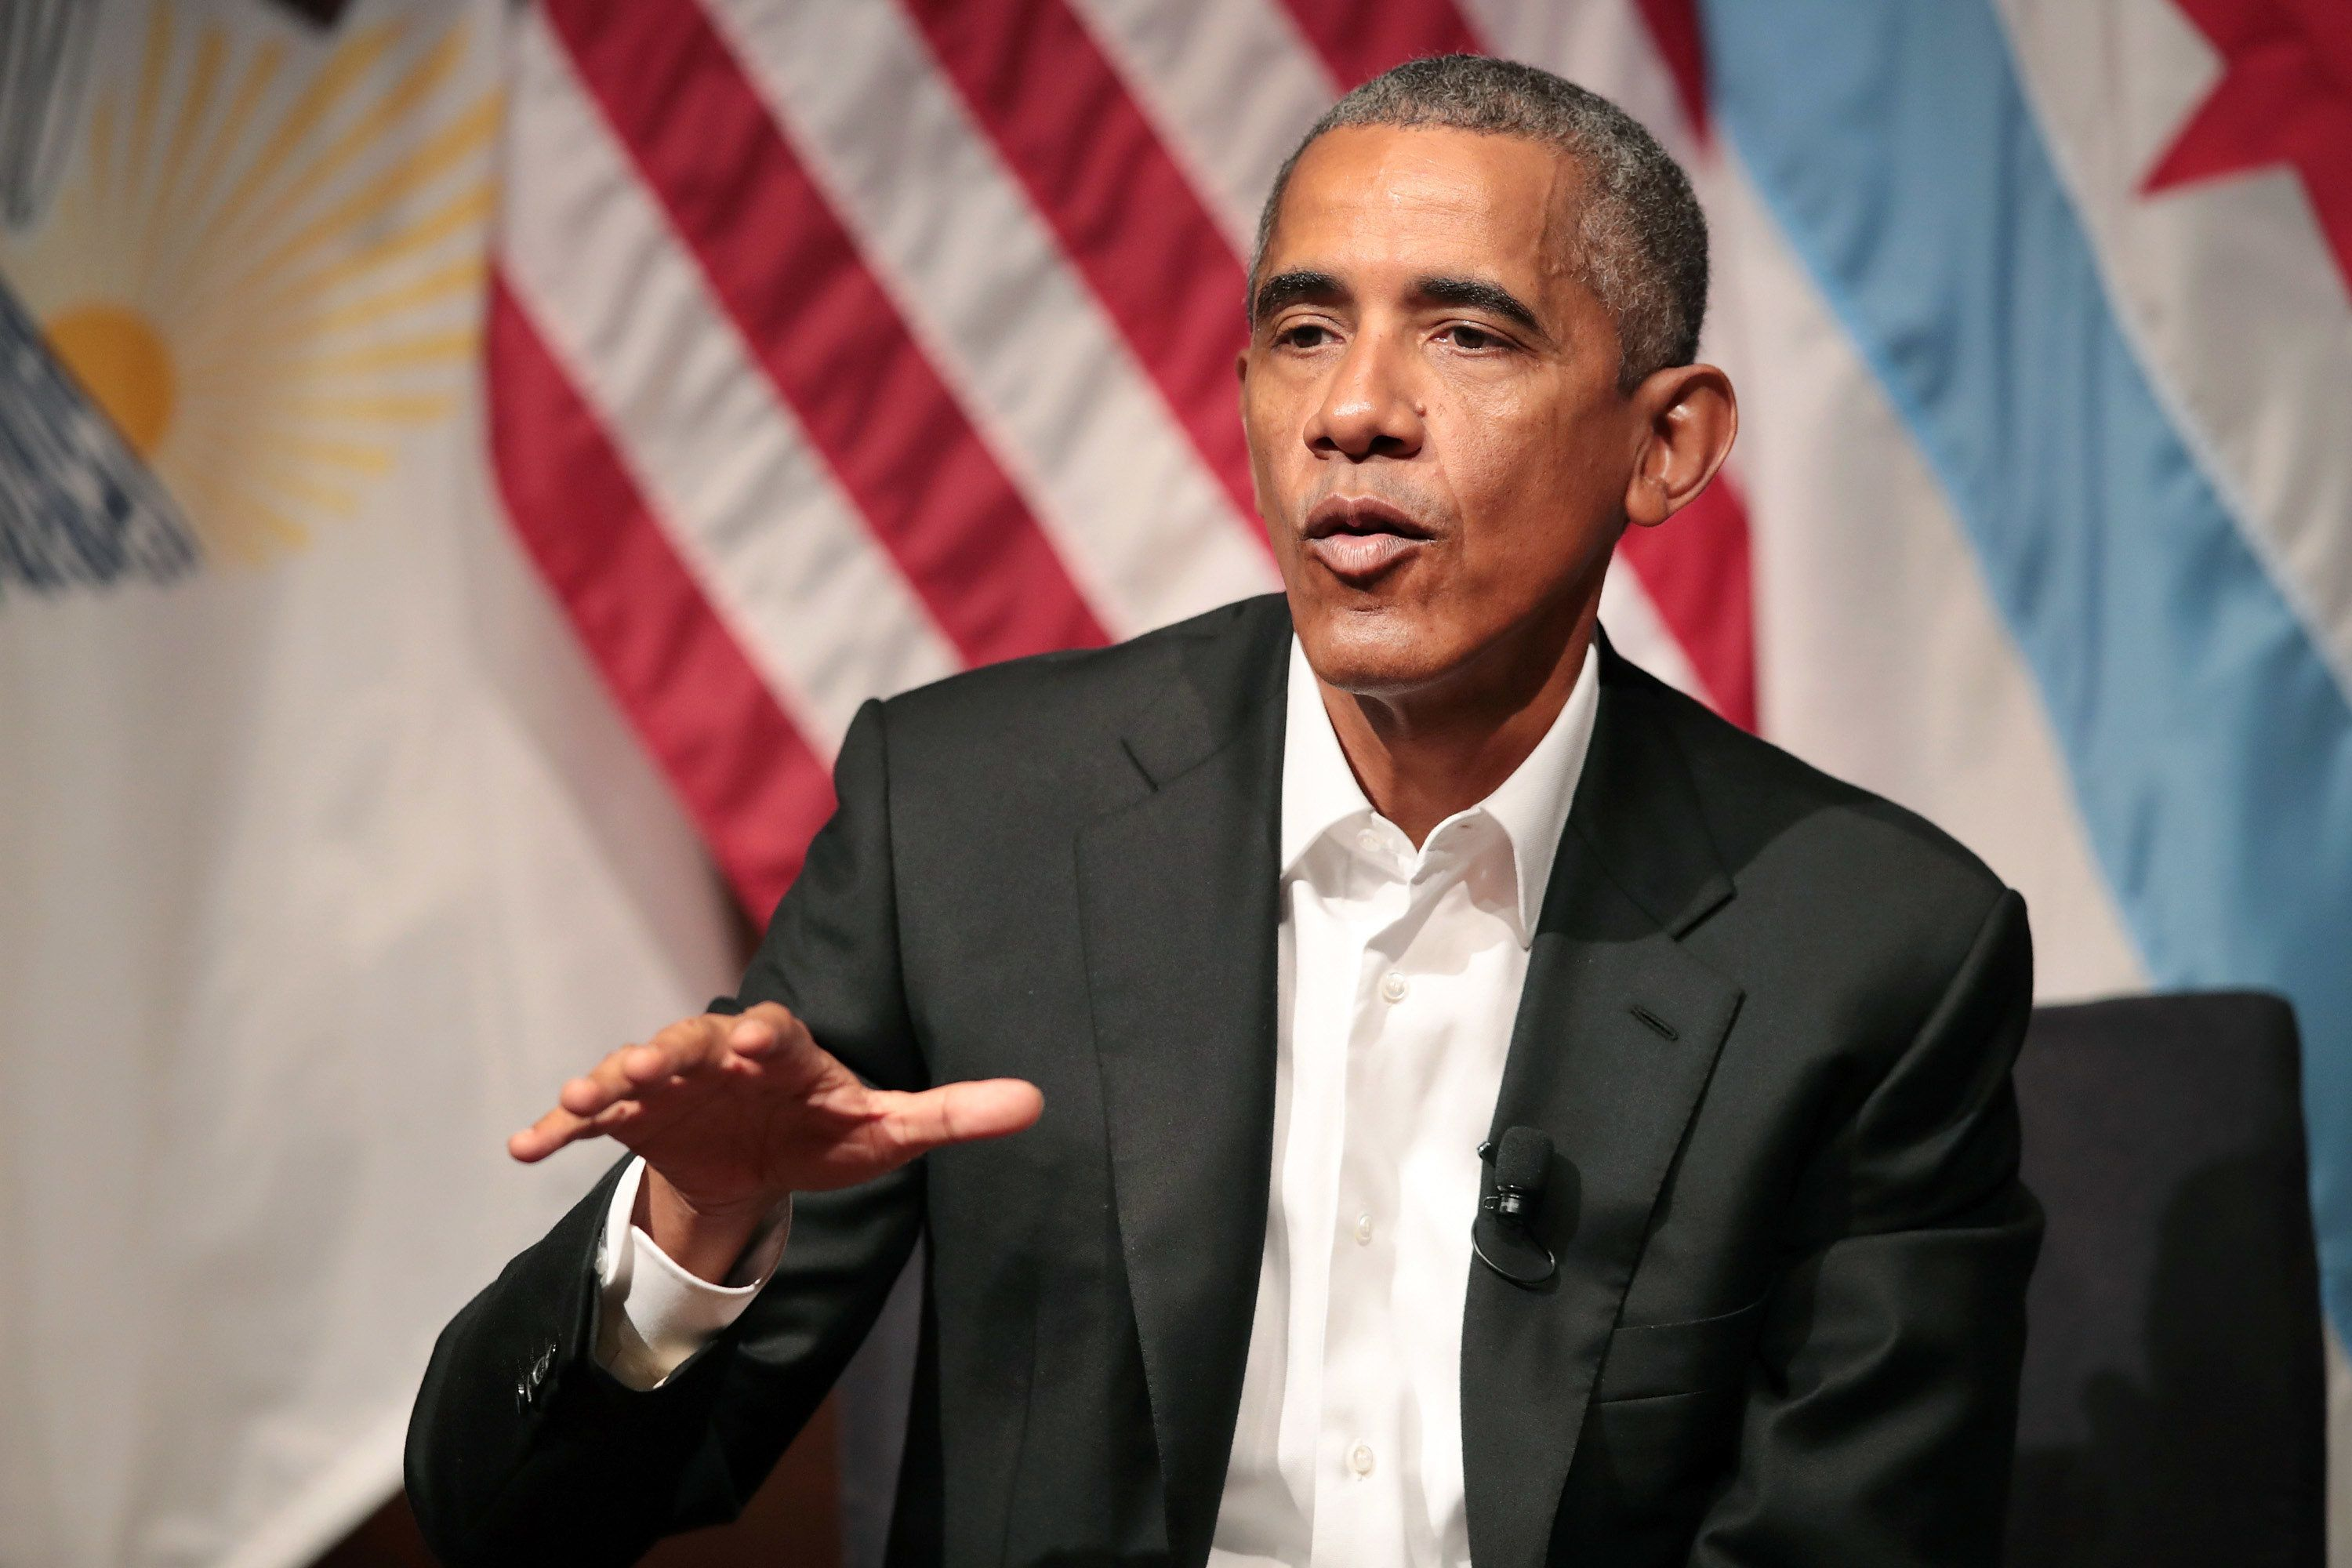 CHICAGO, IL - APRIL 24:  Former U.S. President Barack Obama visits with youth leaders at the University of Chicago to help promote community organizing on April 24, 2017 in Chicago, Illinois. The visit marks Obama's first formal public appearance since leaving office.  (Photo by Scott Olson/Getty Images)